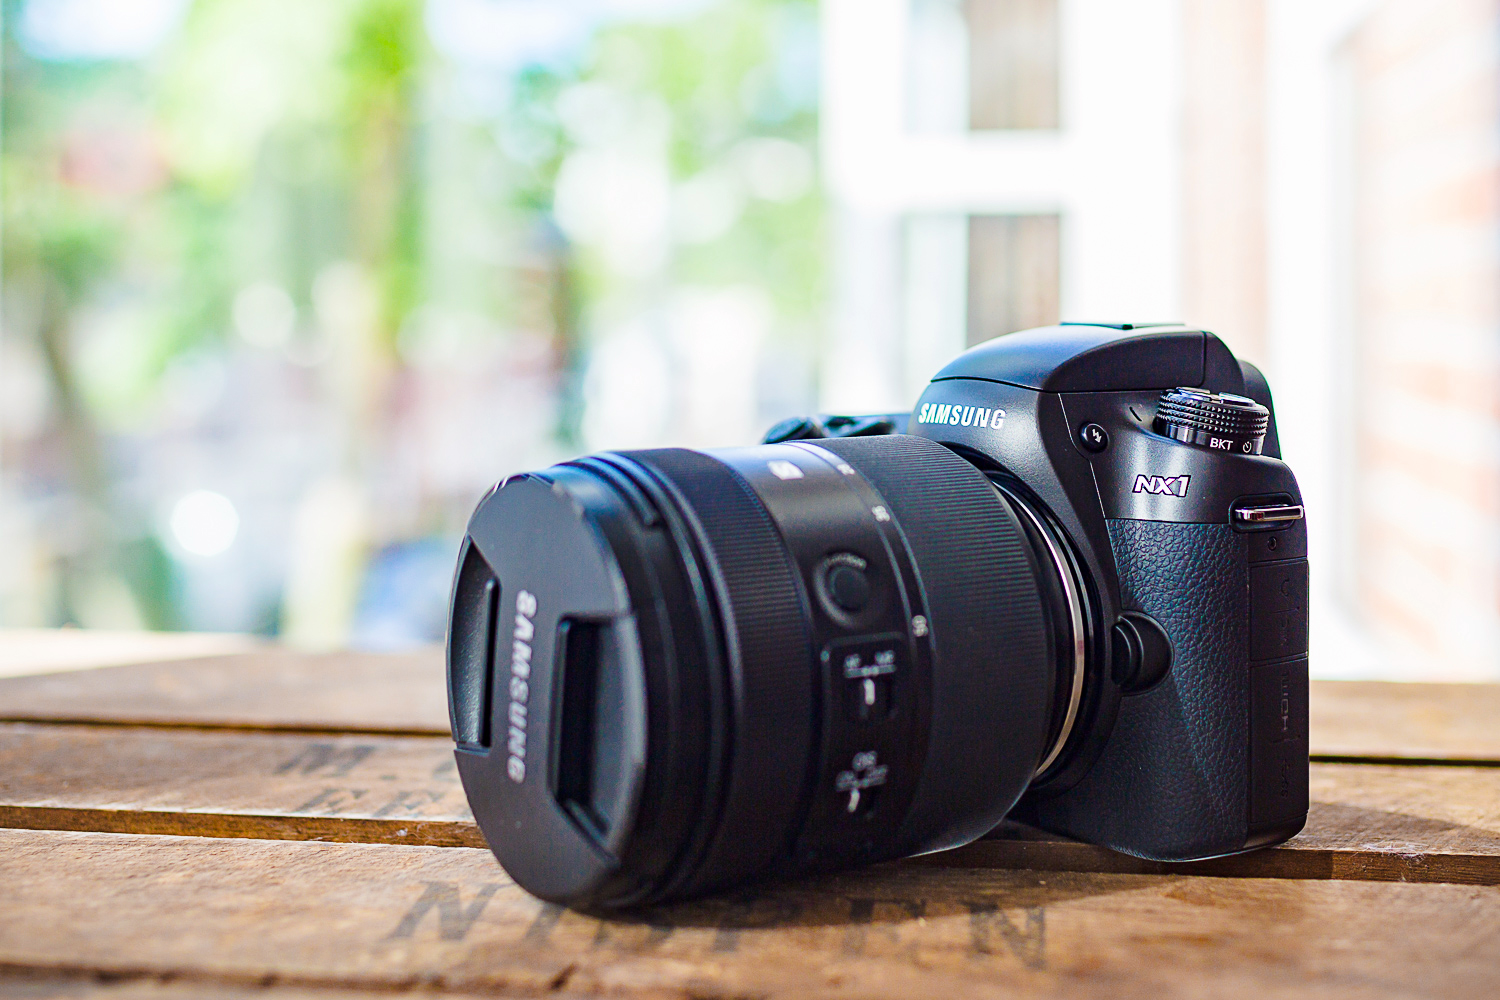 Samsung NX1, a dream camera to fit my tiny hands?